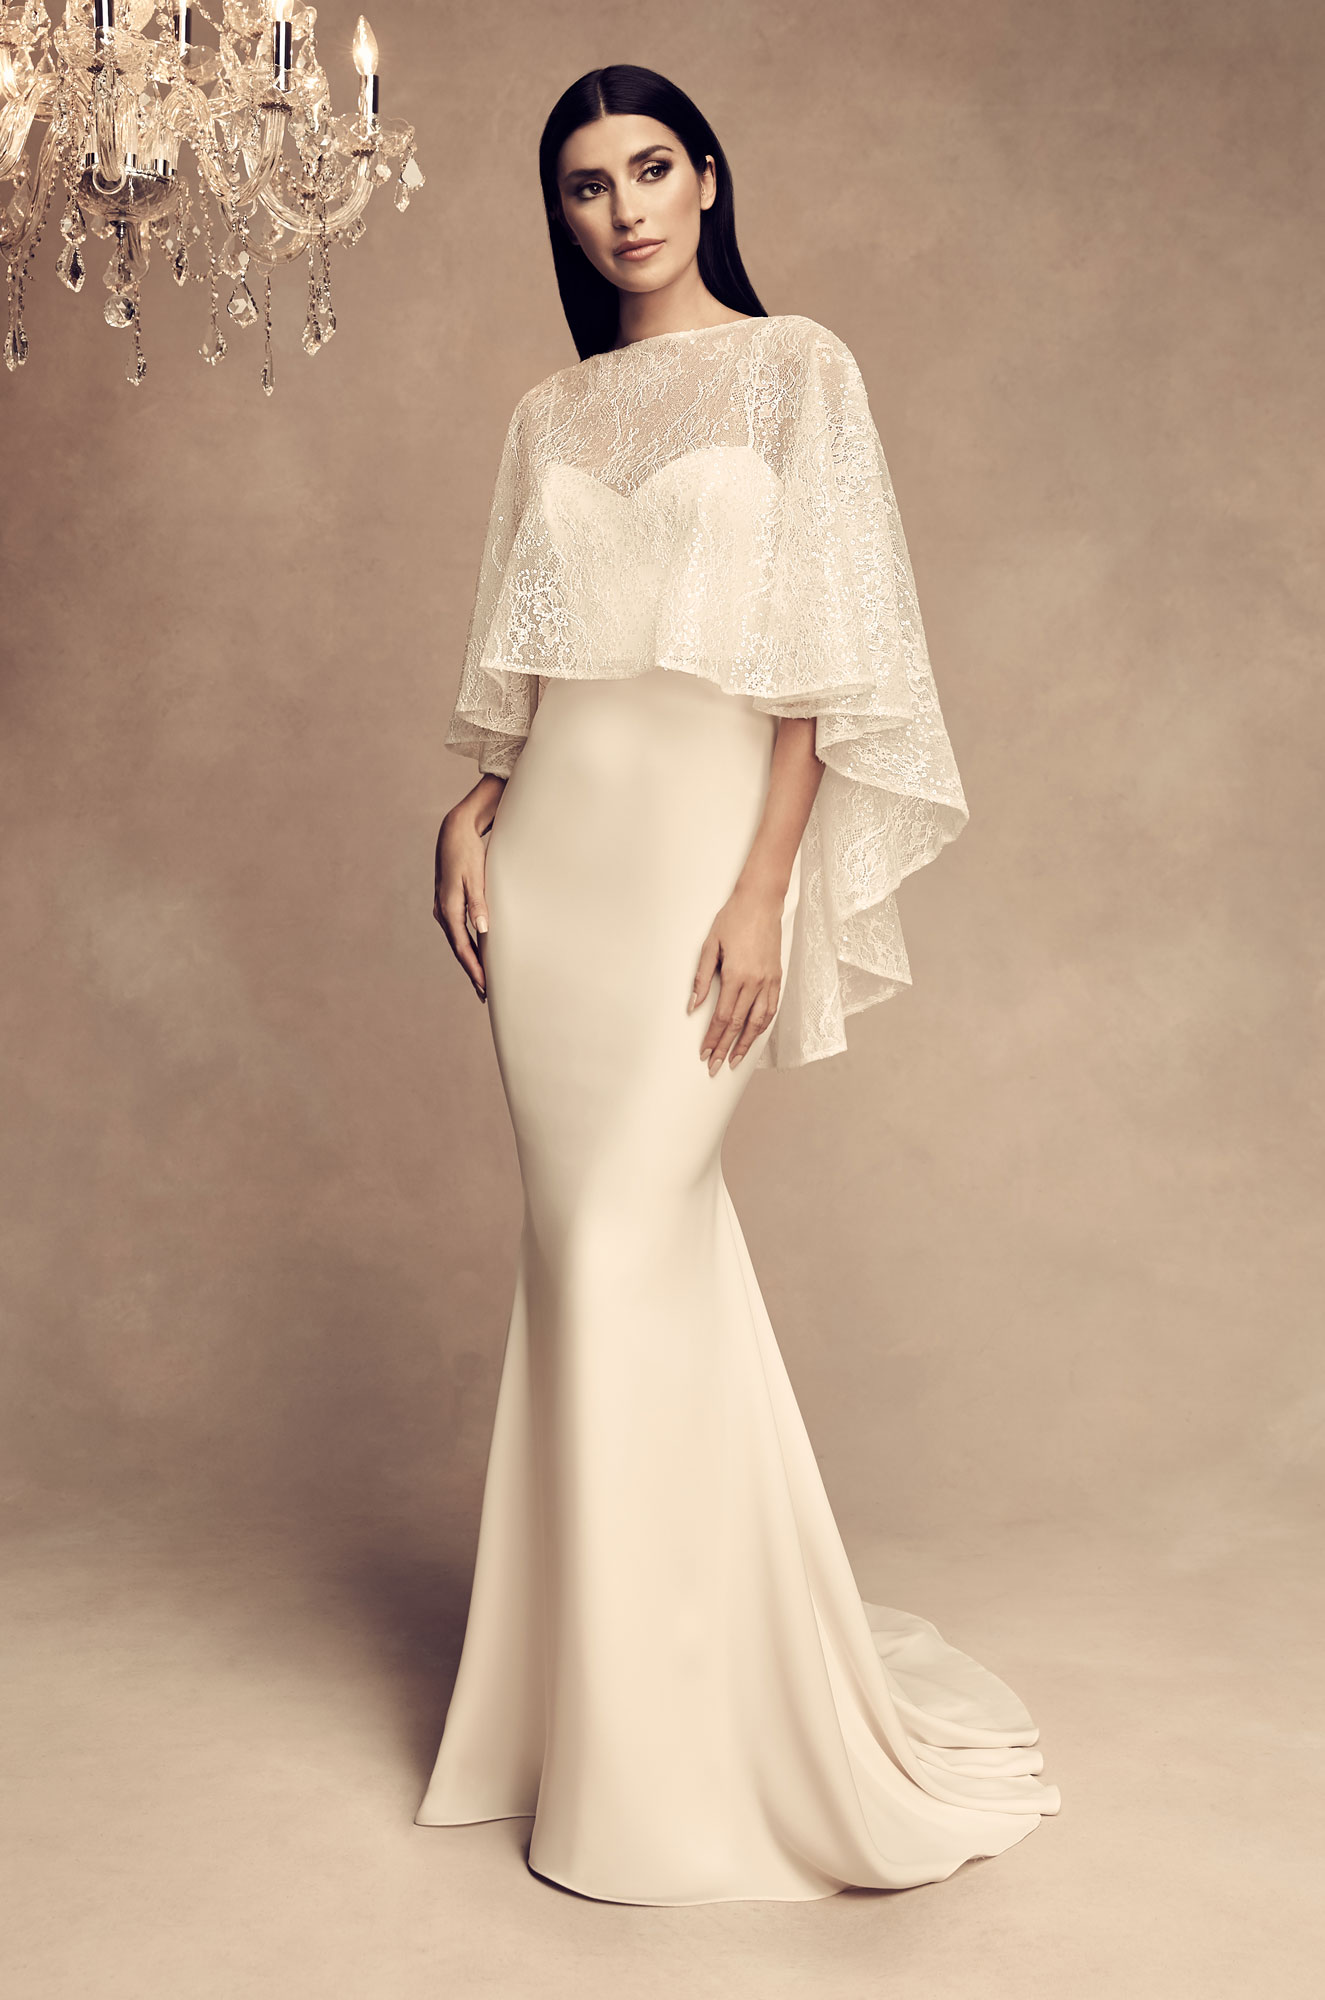 Sequin Cape Wedding Dress - Style #4805 | Paloma Blanca